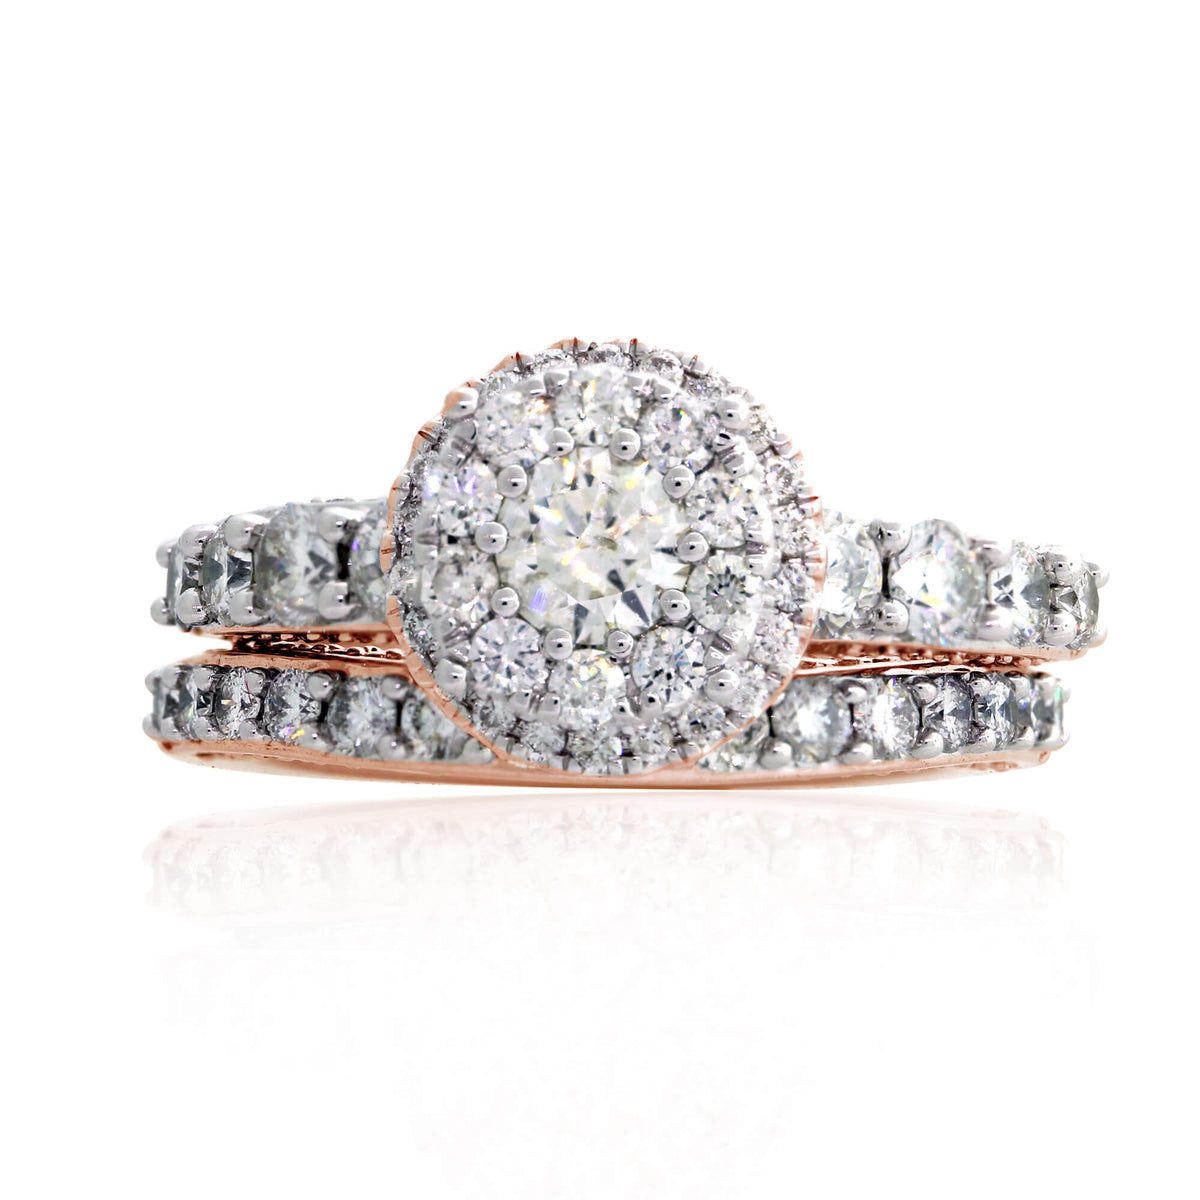 Miché Collection 2.51 Ct Diamond Cluster Engagement Set in 14k Gold